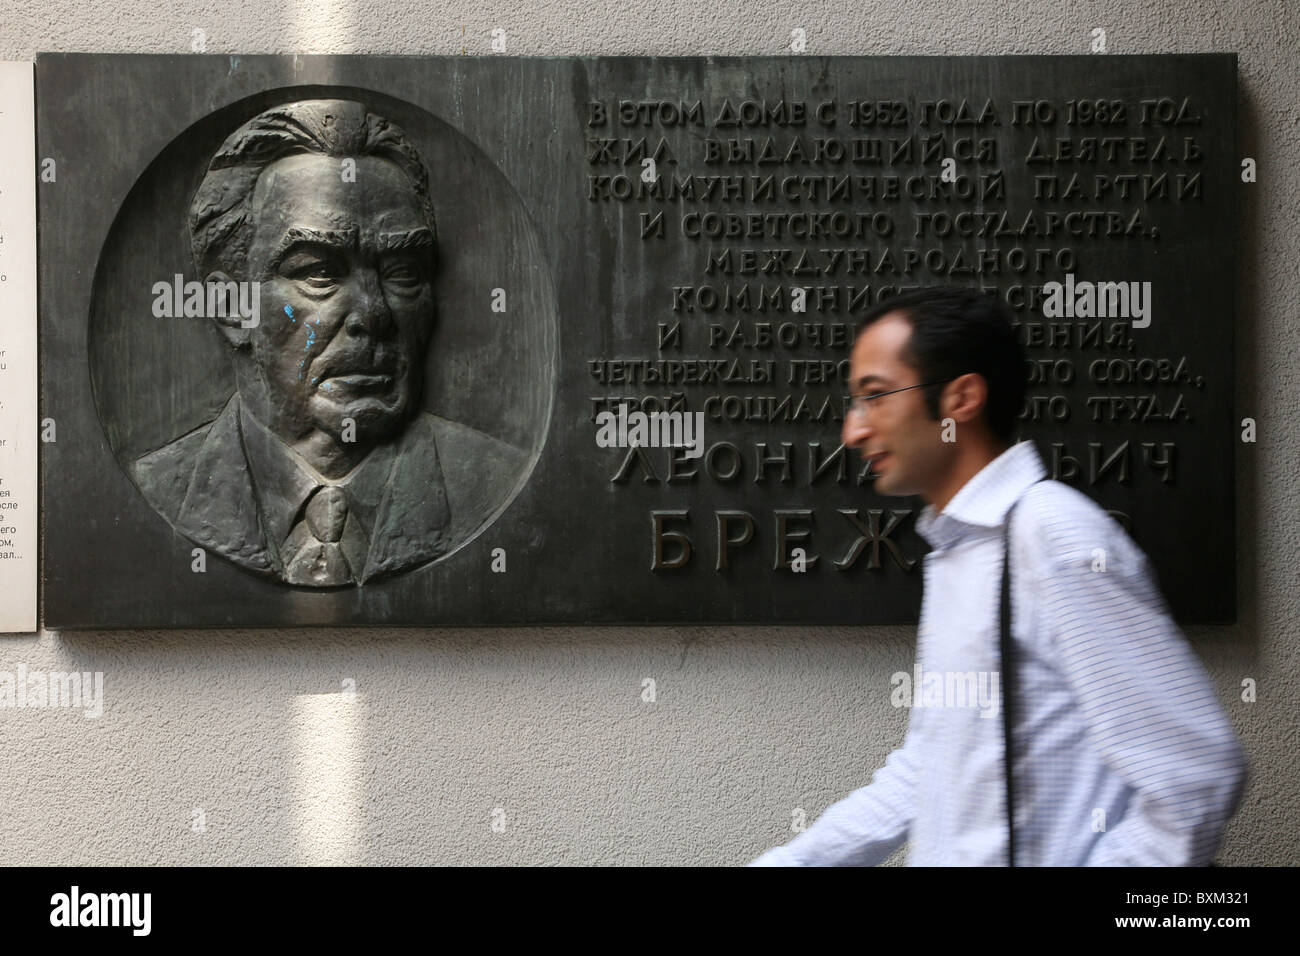 Man passing a commemorative plaque from the house of Leonid Brezhnev in Moscow in the Berlin Wall Museum in Berlin, - Stock Image